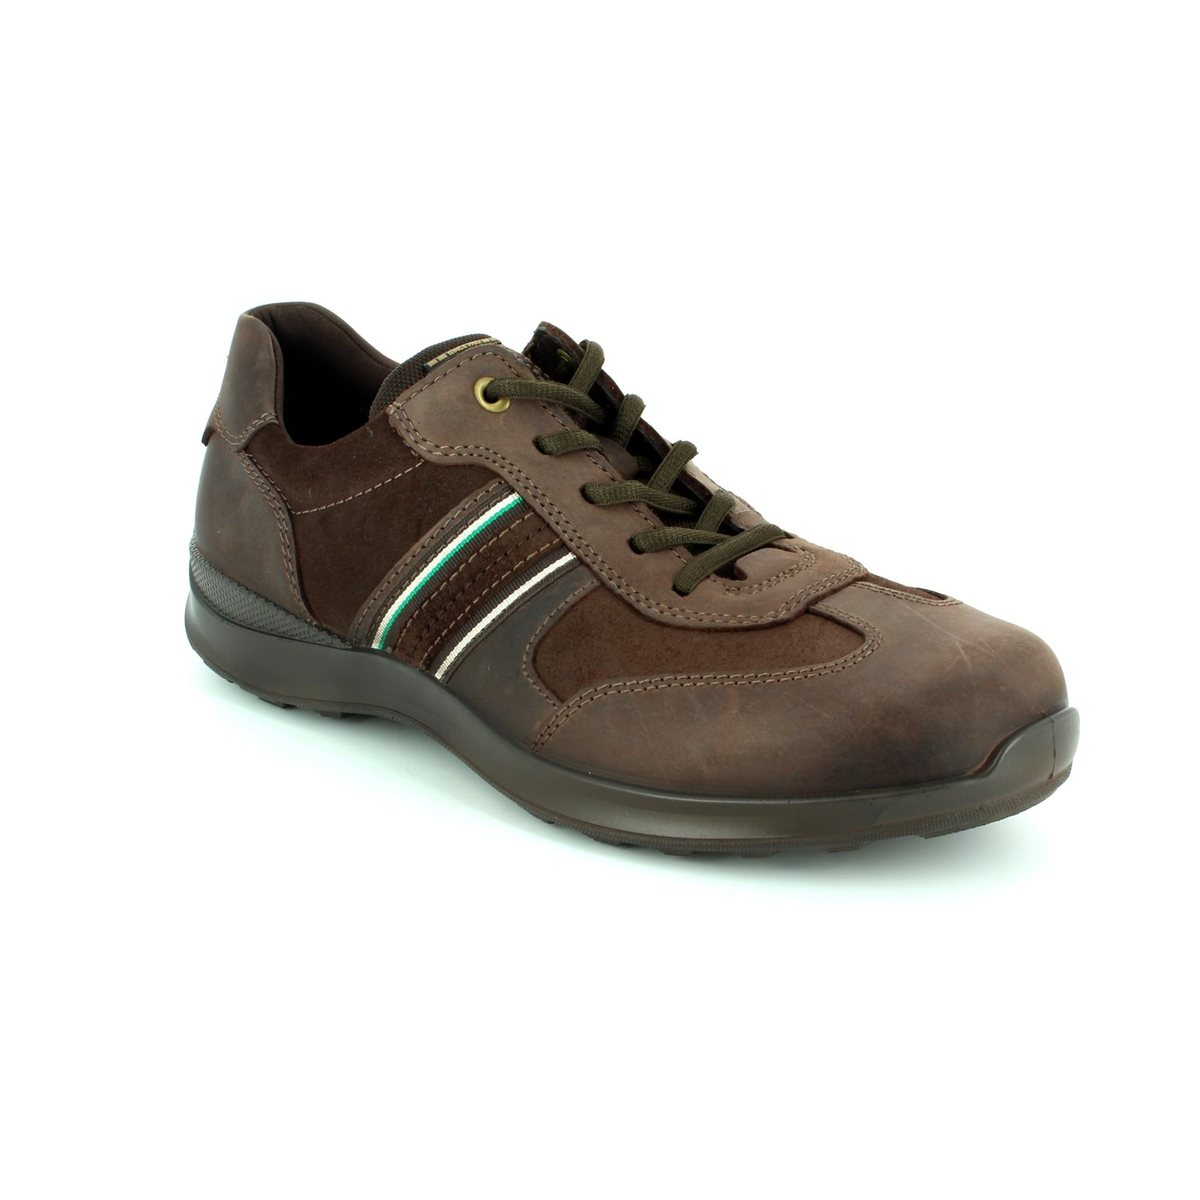 c2d05e6ddd85 ECCO Casual Shoes - Brown nubuck - 501314 58290 HAYES